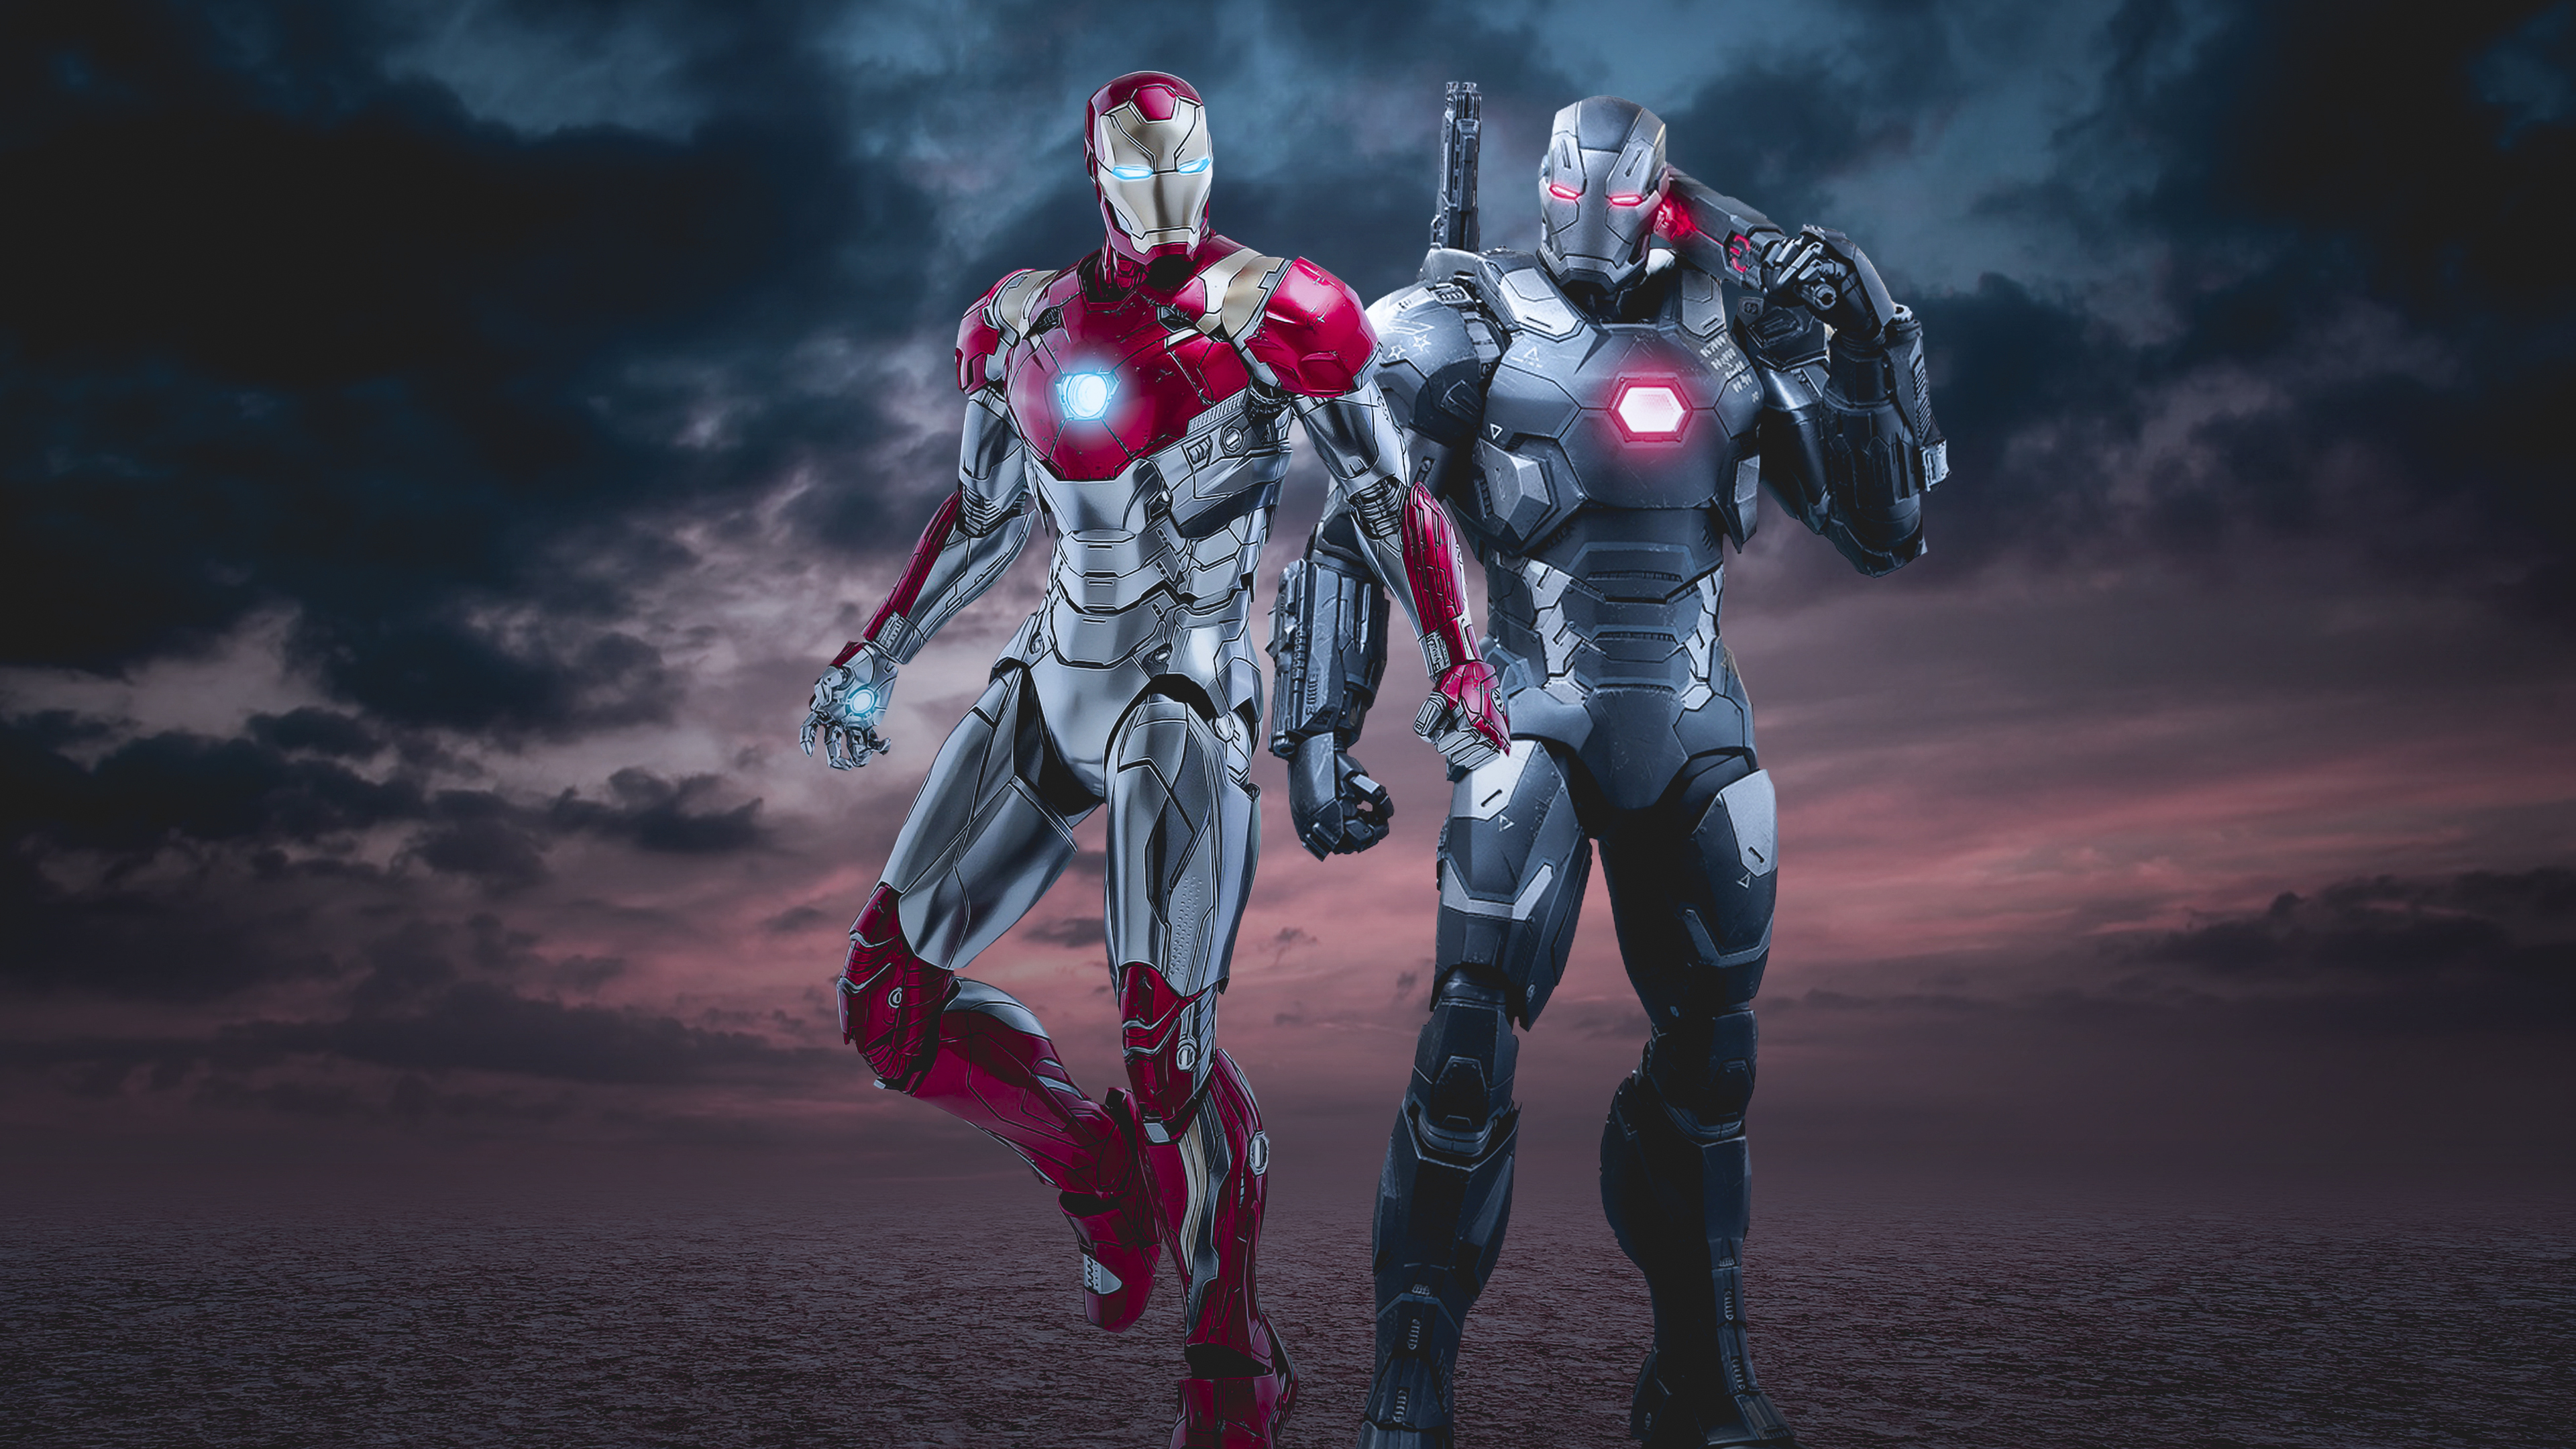 iron man and war machine 4k 1537645995 - Iron Man And War Machine 4k - war machine wallpapers, superheroes wallpapers, iron man wallpapers, hd-wallpapers, digital art wallpapers, deviantart wallpapers, artist wallpapers, 4k-wallpapers